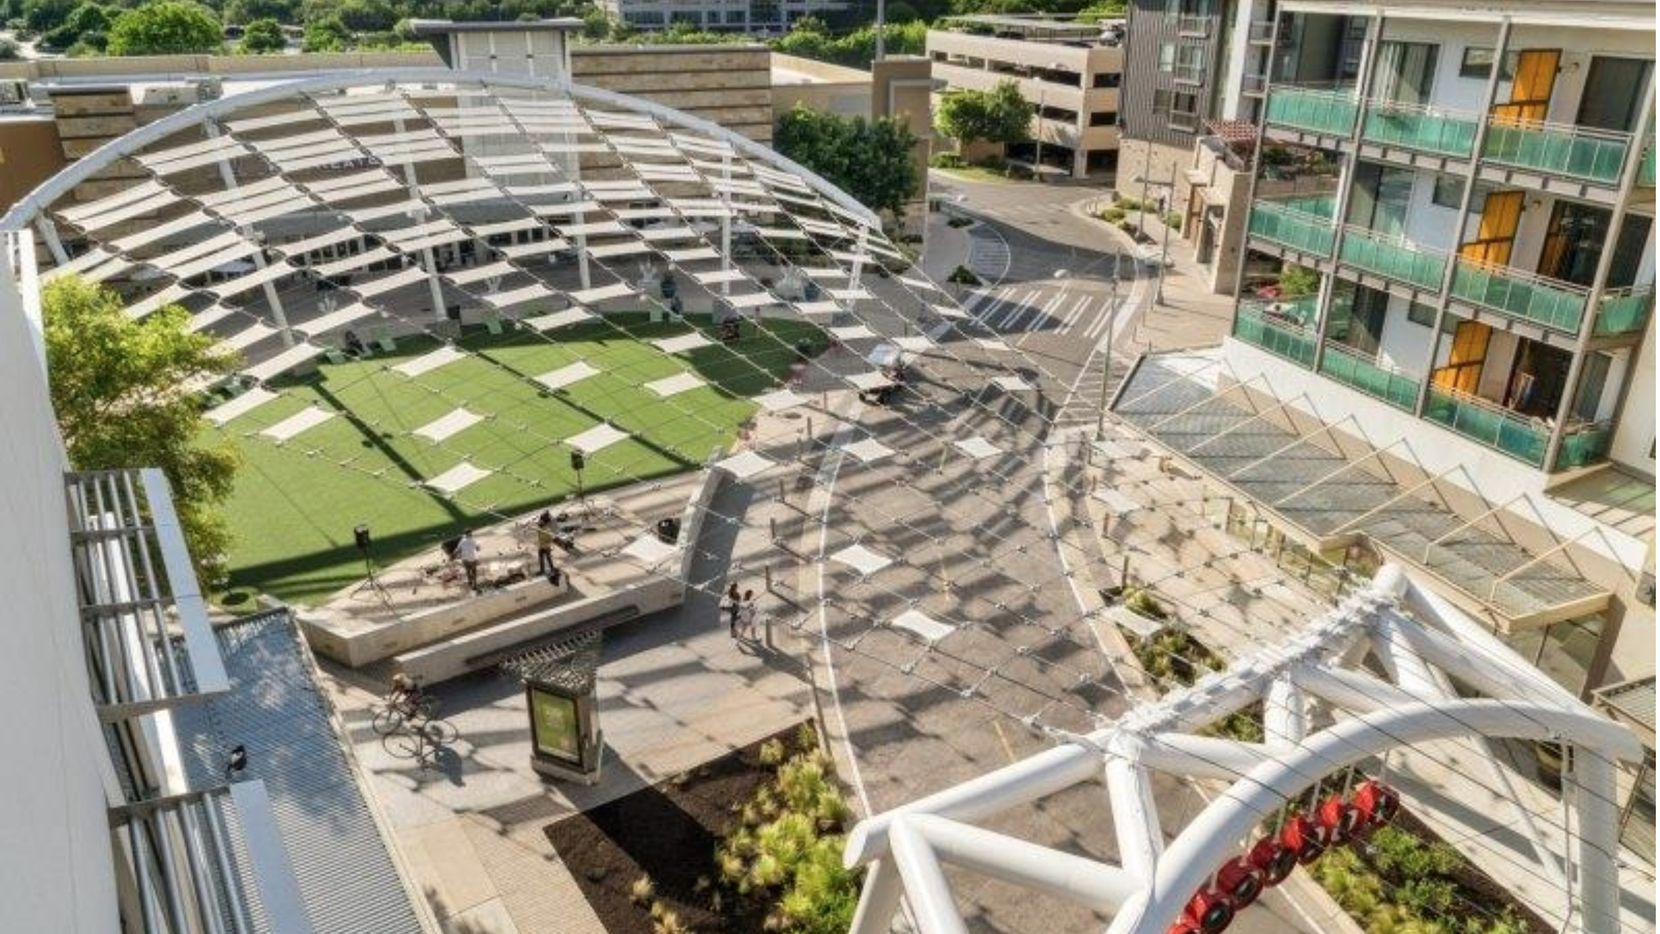 The planned mixed-use project surrounds a new public plaza.